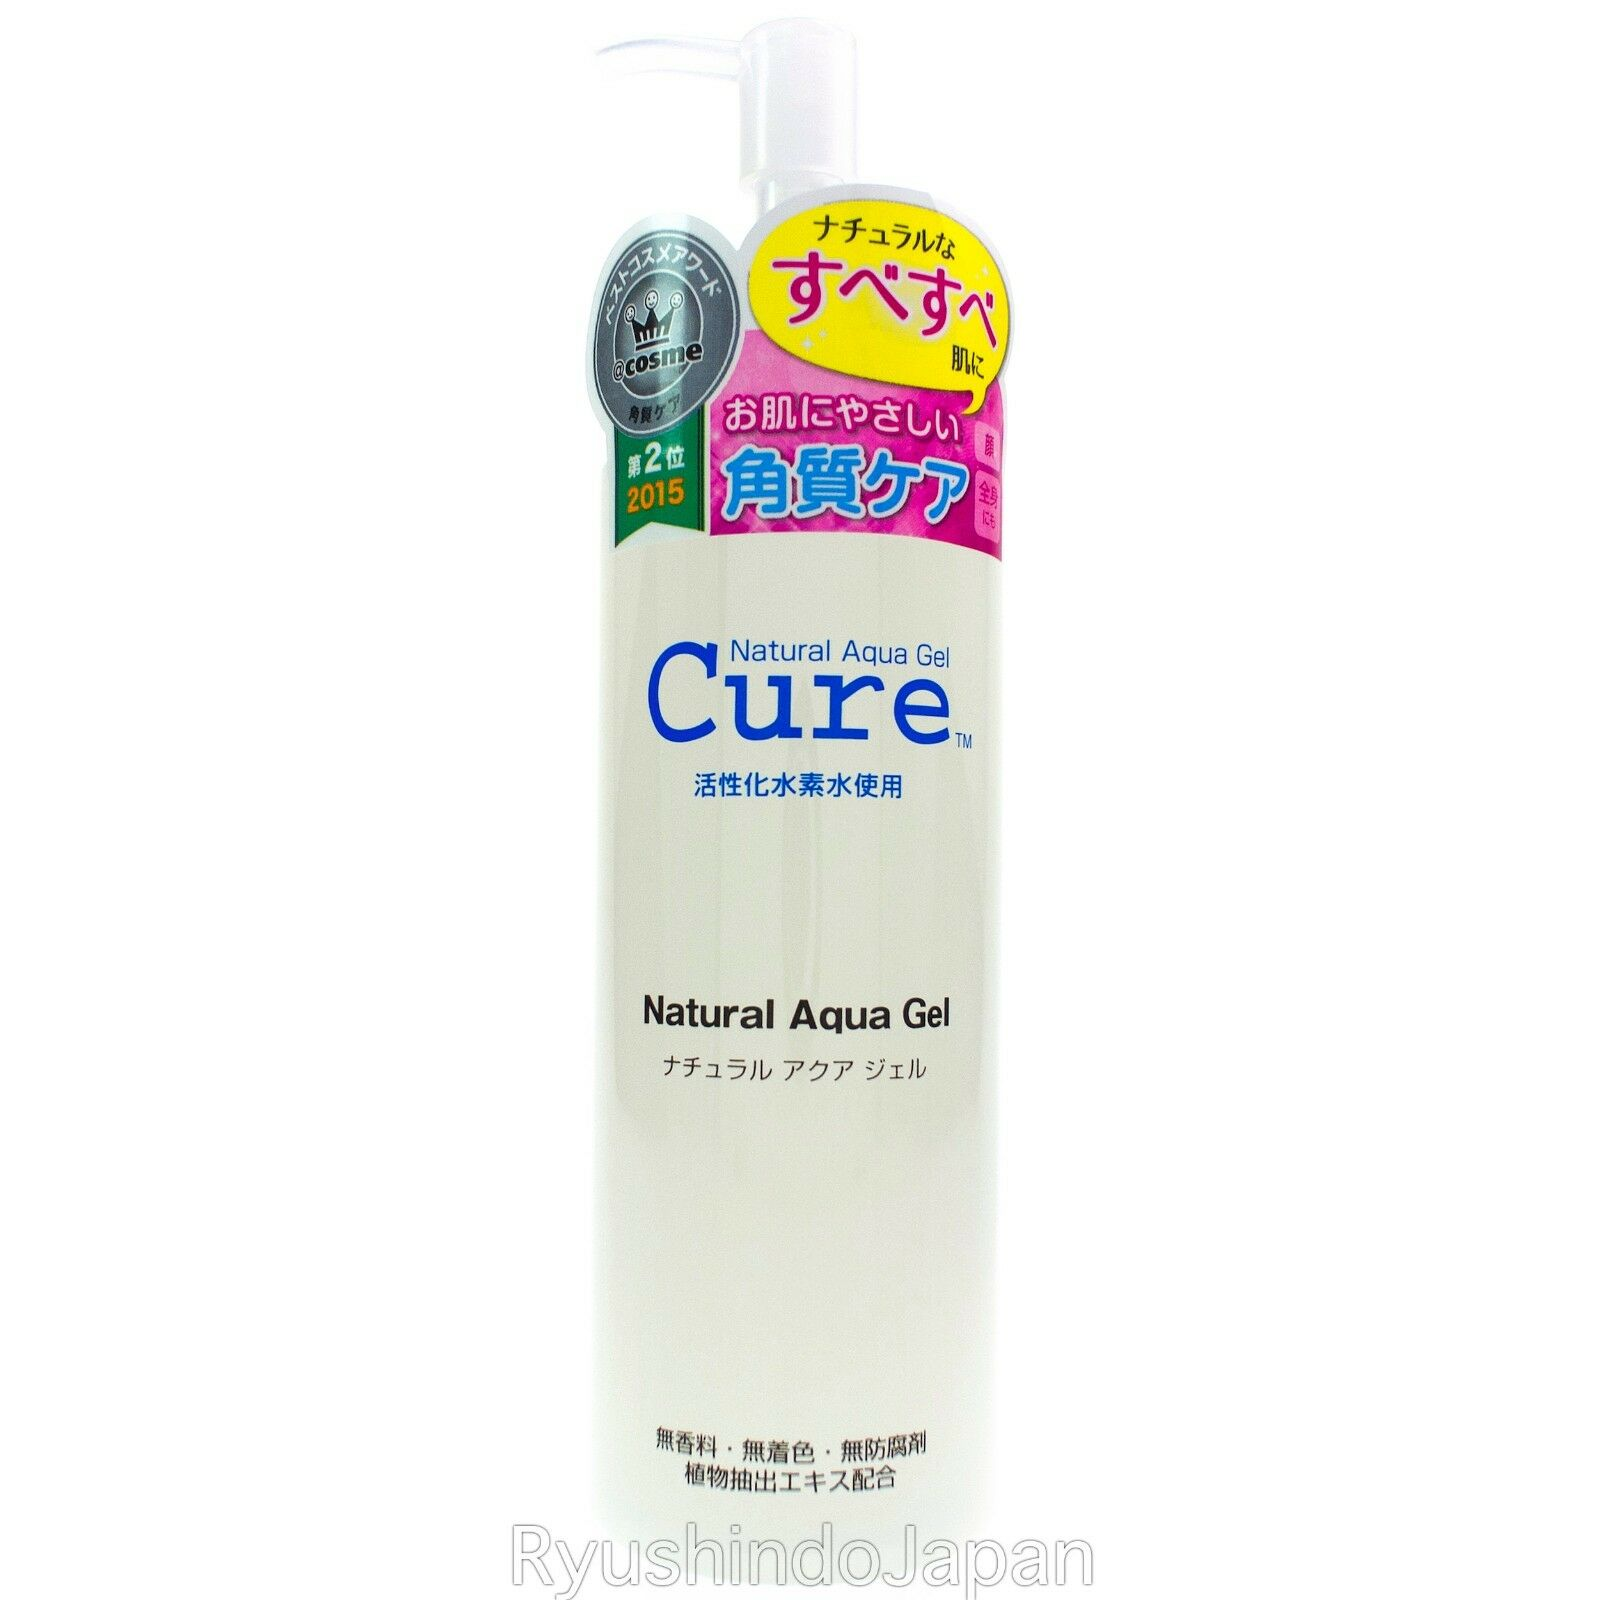 How To Use Cure Natural Aqua Gel